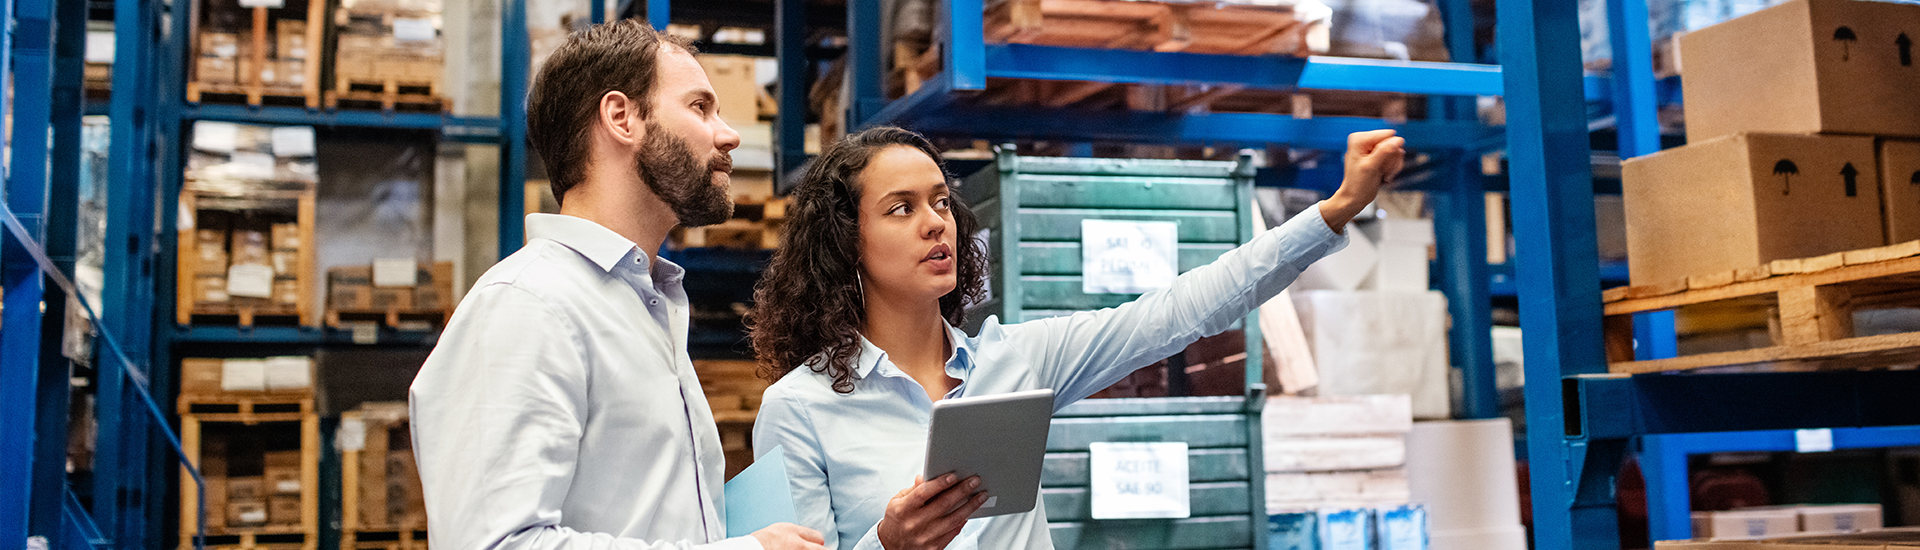 Manufacturers Need to Work Together to Meet Hiring Needs in 2021